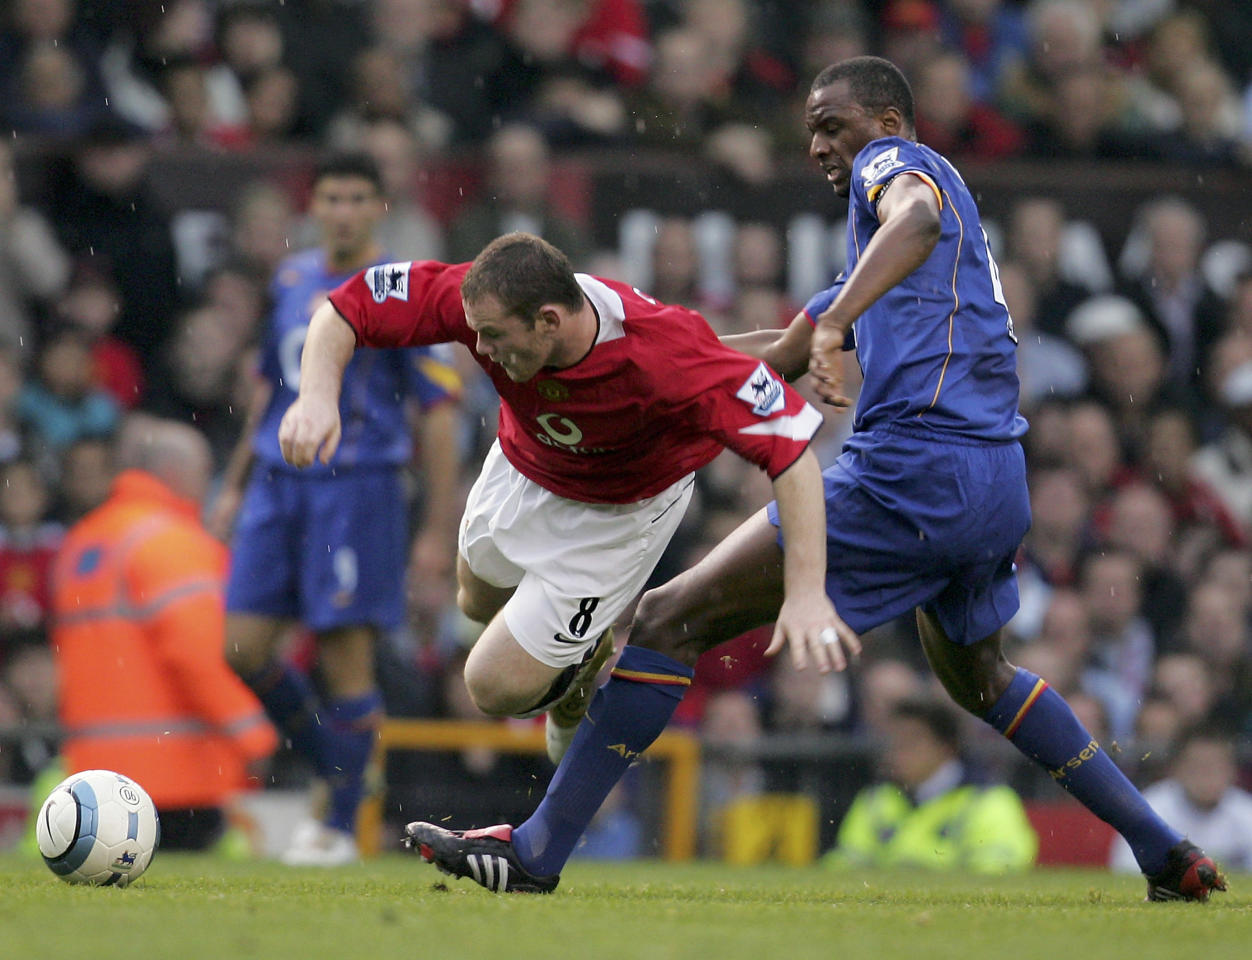 Wayne Rooney wins a penalty for Manchester United and Arsenal are denied a 50th game unbeaten. (24 October 2004)